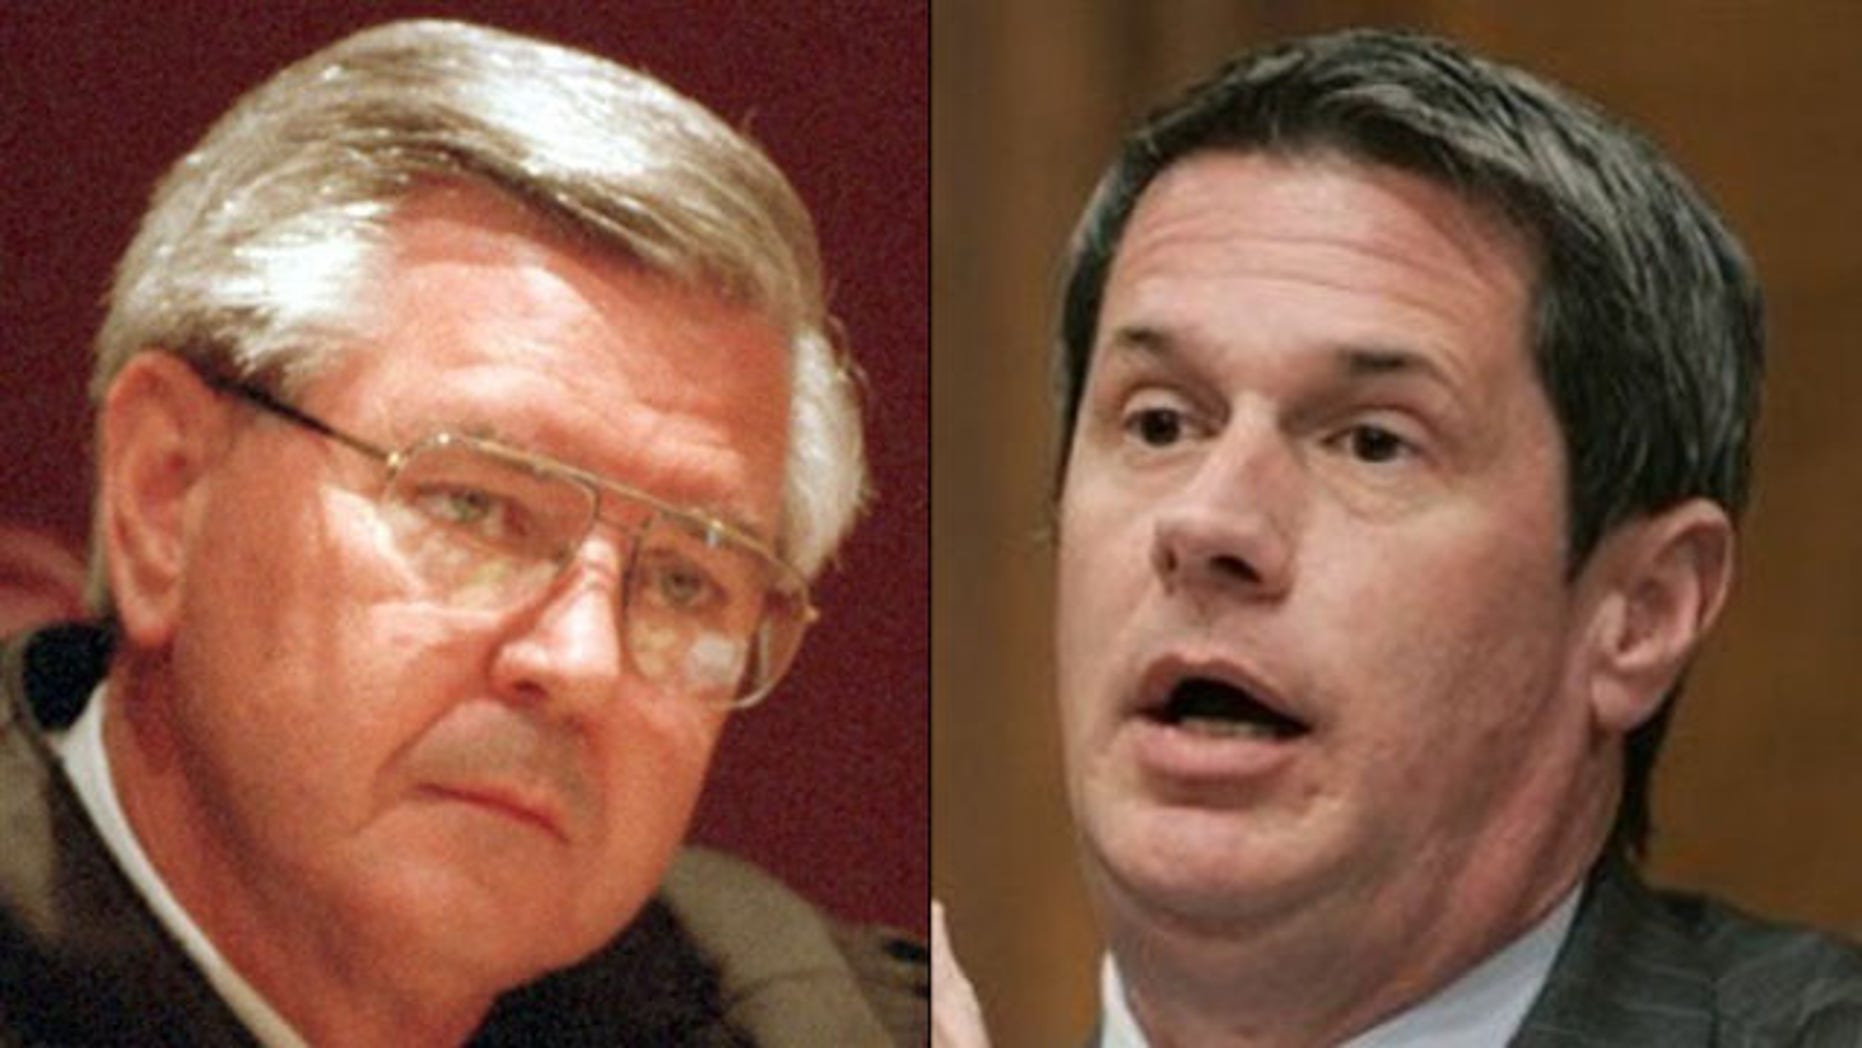 Shown here are Louisiana Senate candidate Chet Traylor, left, and Sen. David Vitter. (AP Photos)